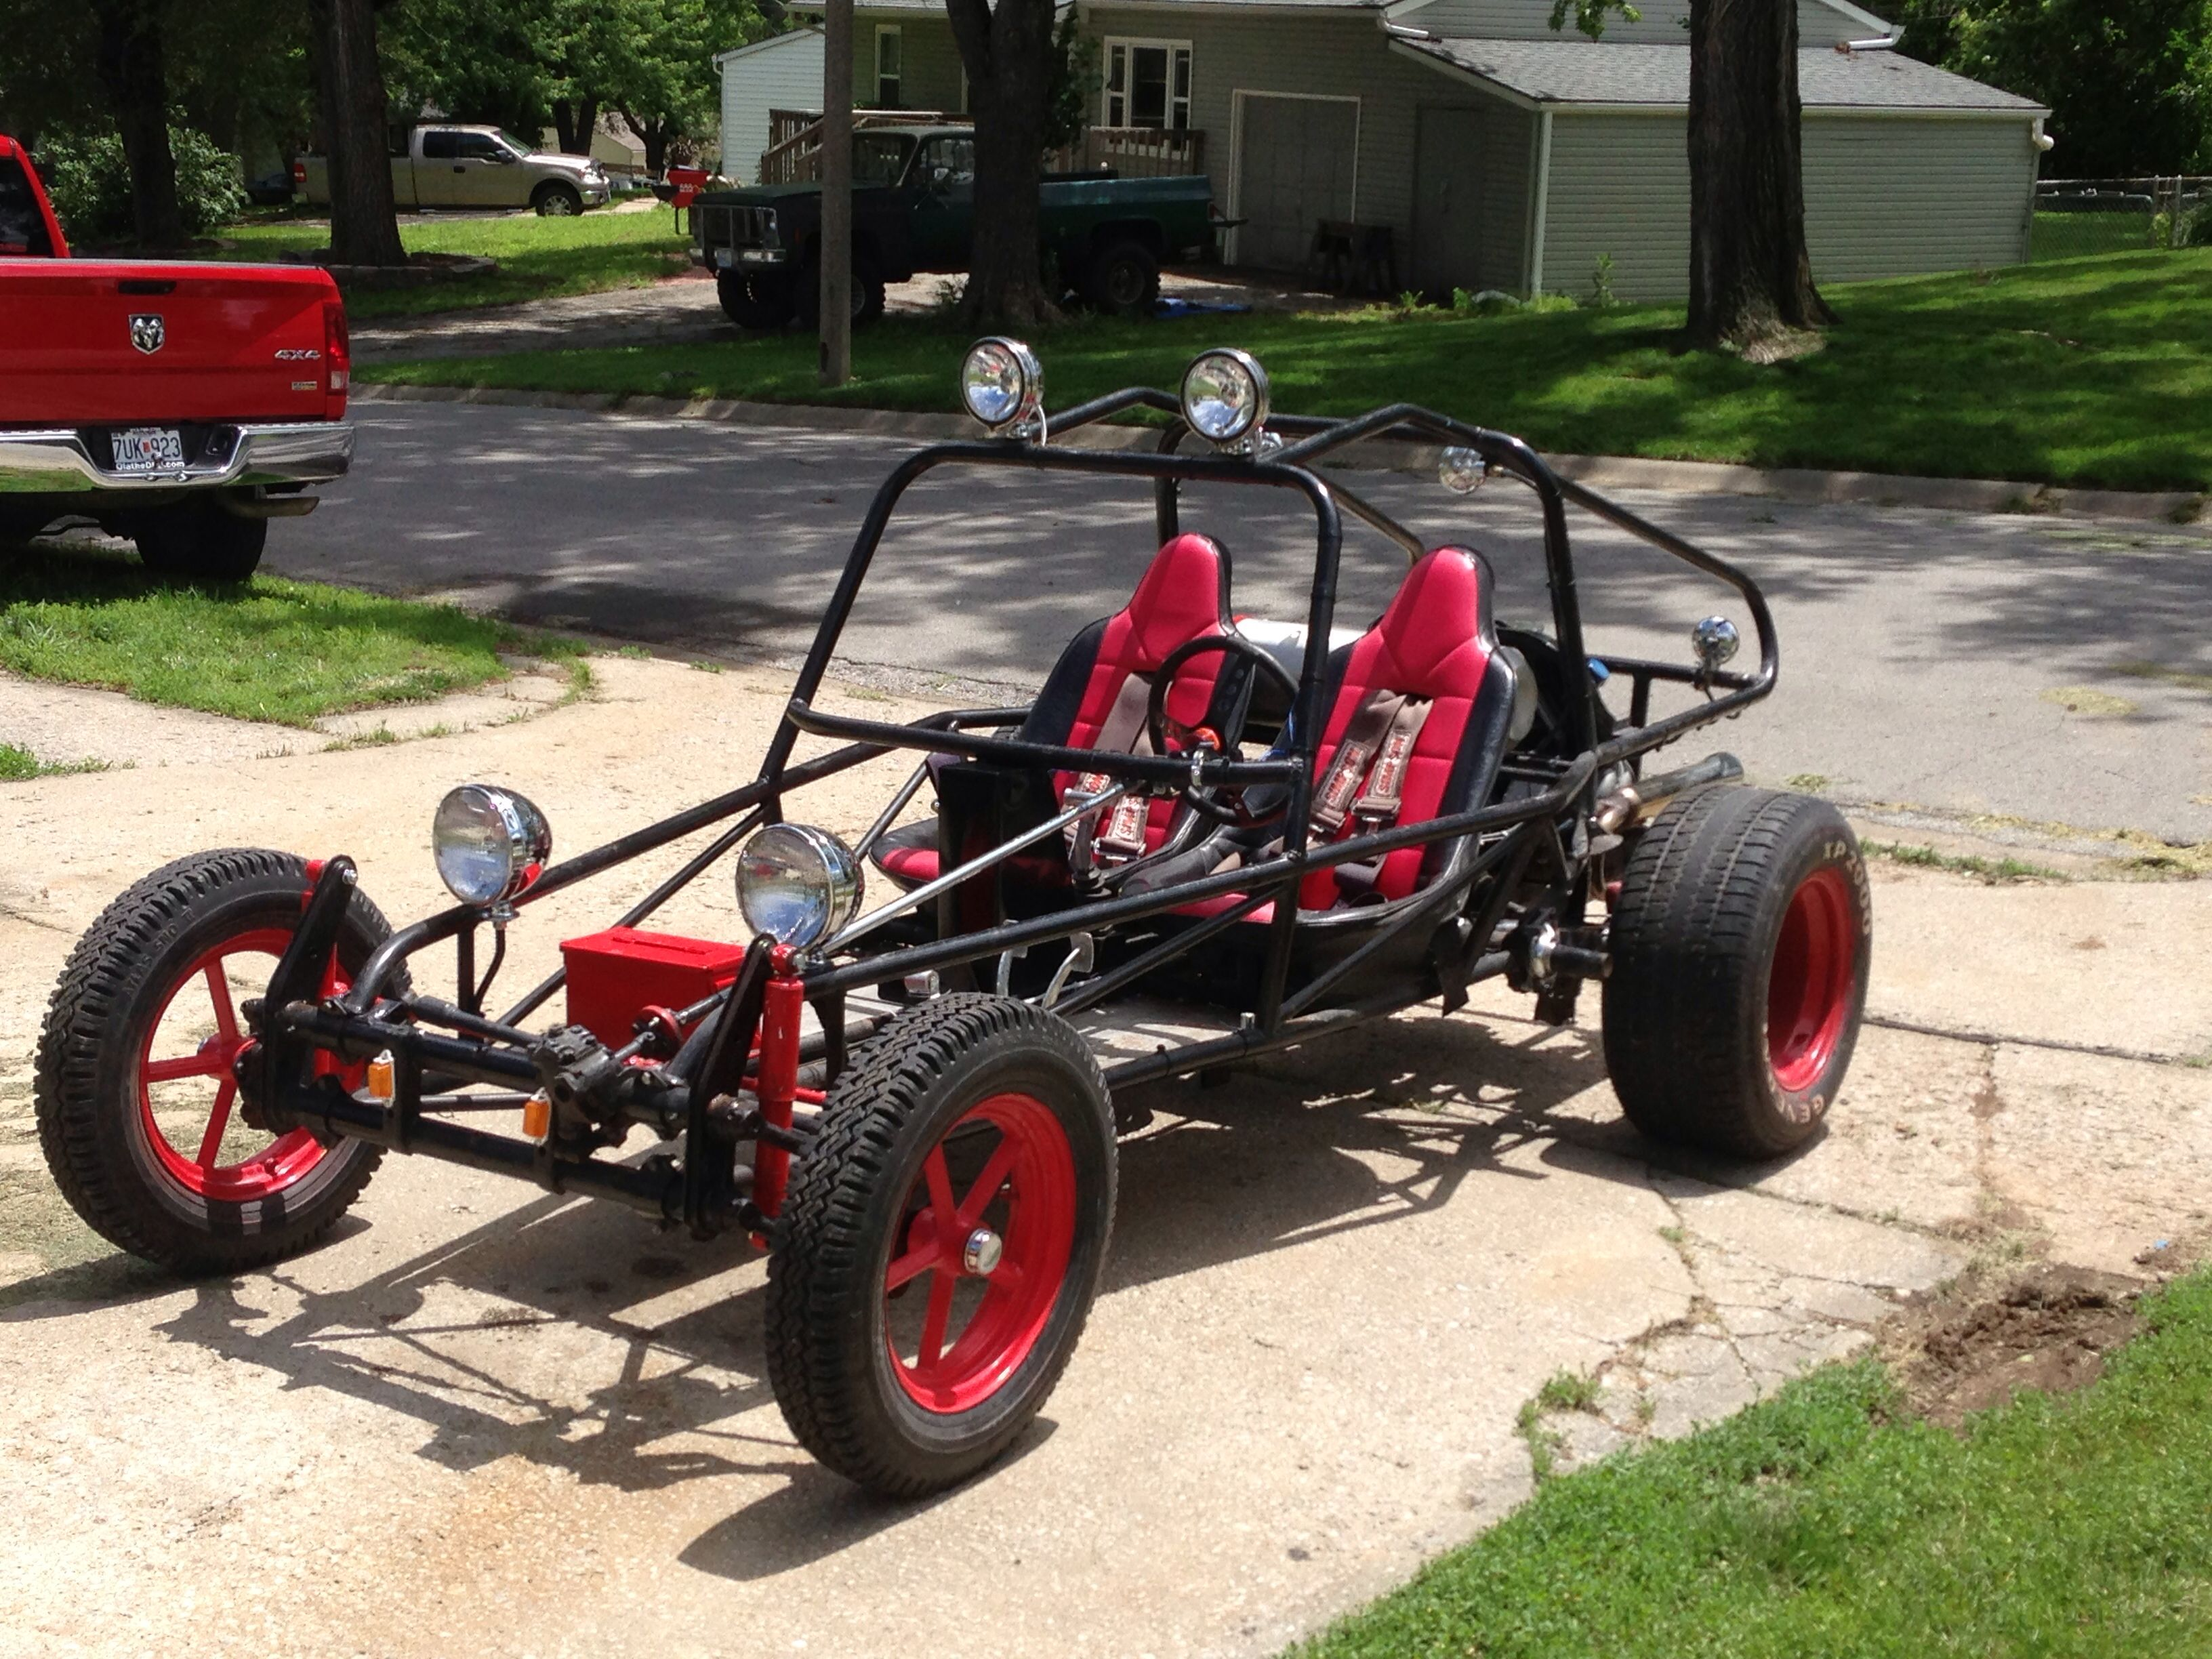 Kart Cross Buggy Build Vw 1600 Dp Dune Buggy 2 Year Build Vw Dune Buggy Sand